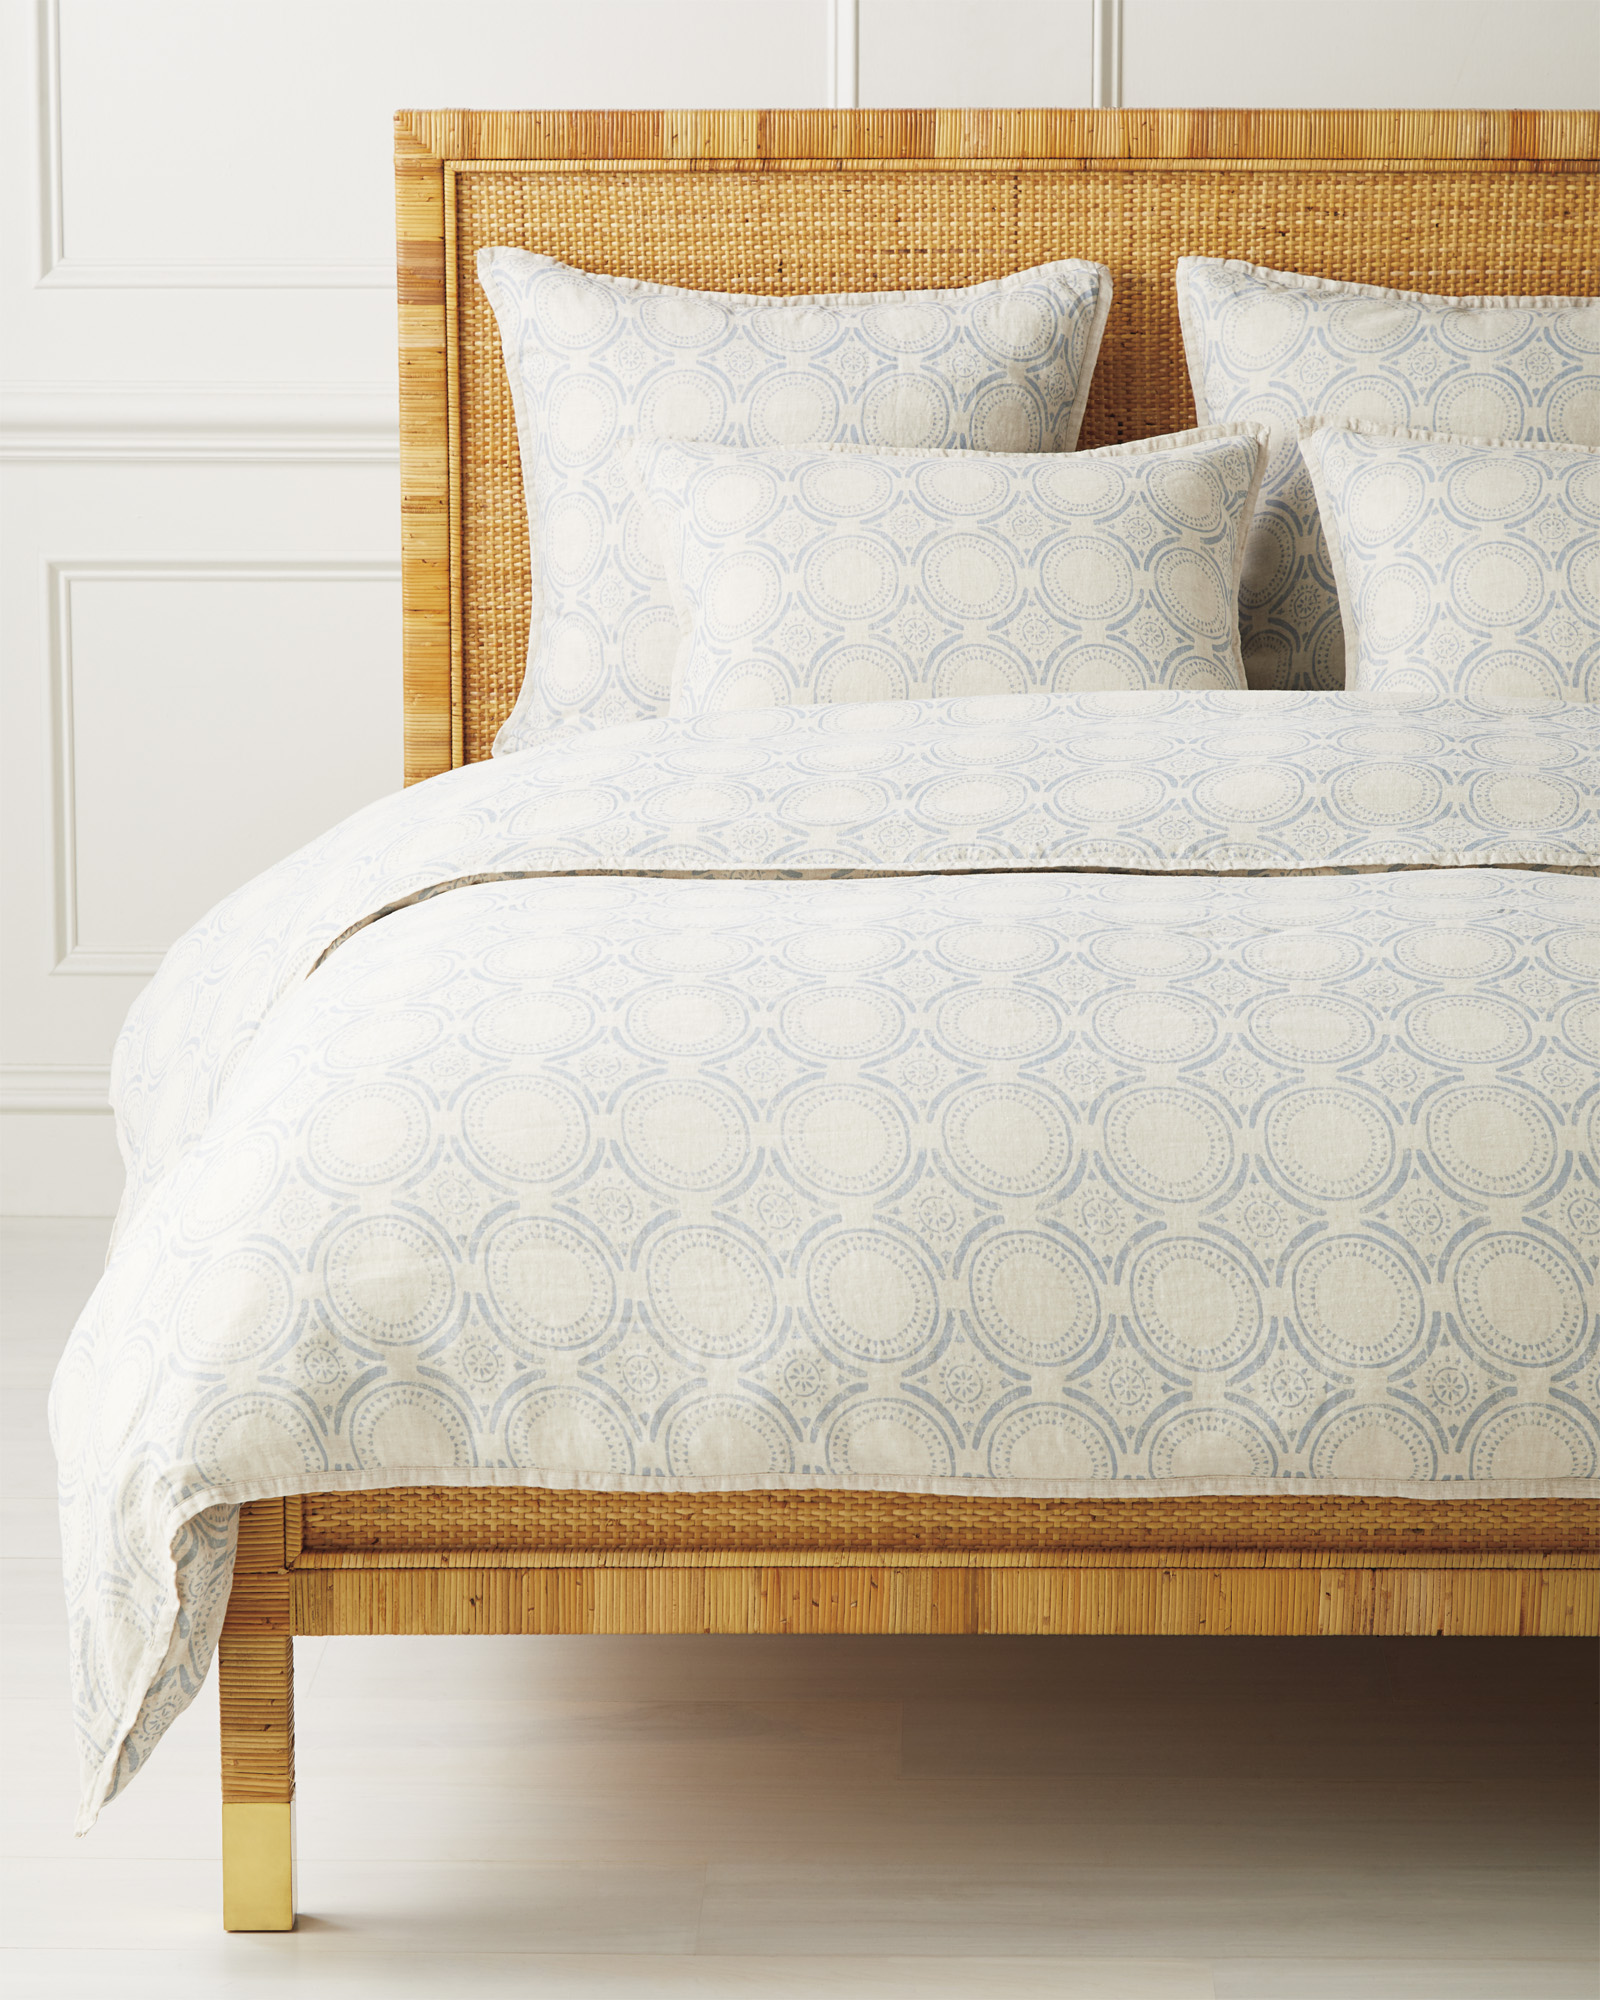 Cavallo Tile Duvet Cover, Flax Chambray